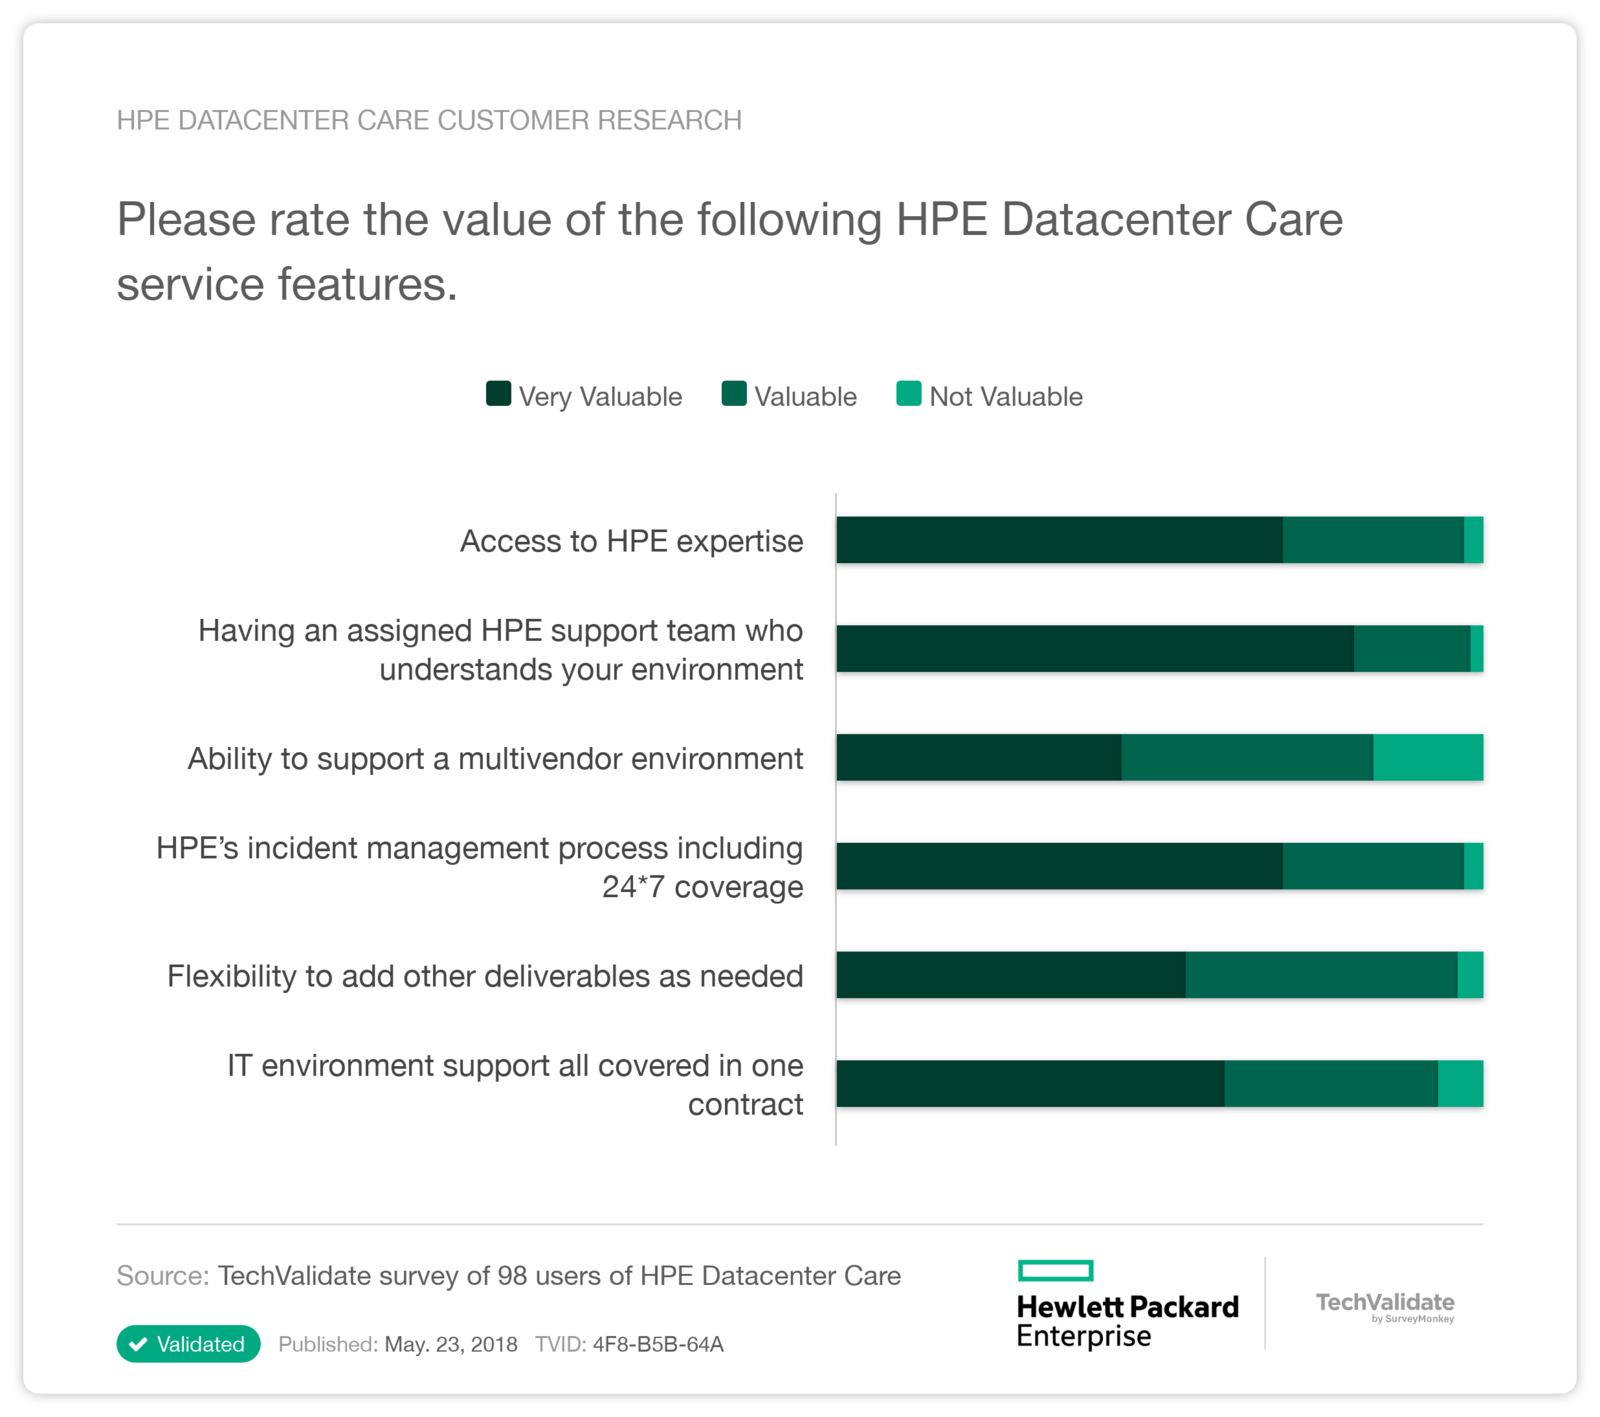 HPE Datacenter Care Customer Research